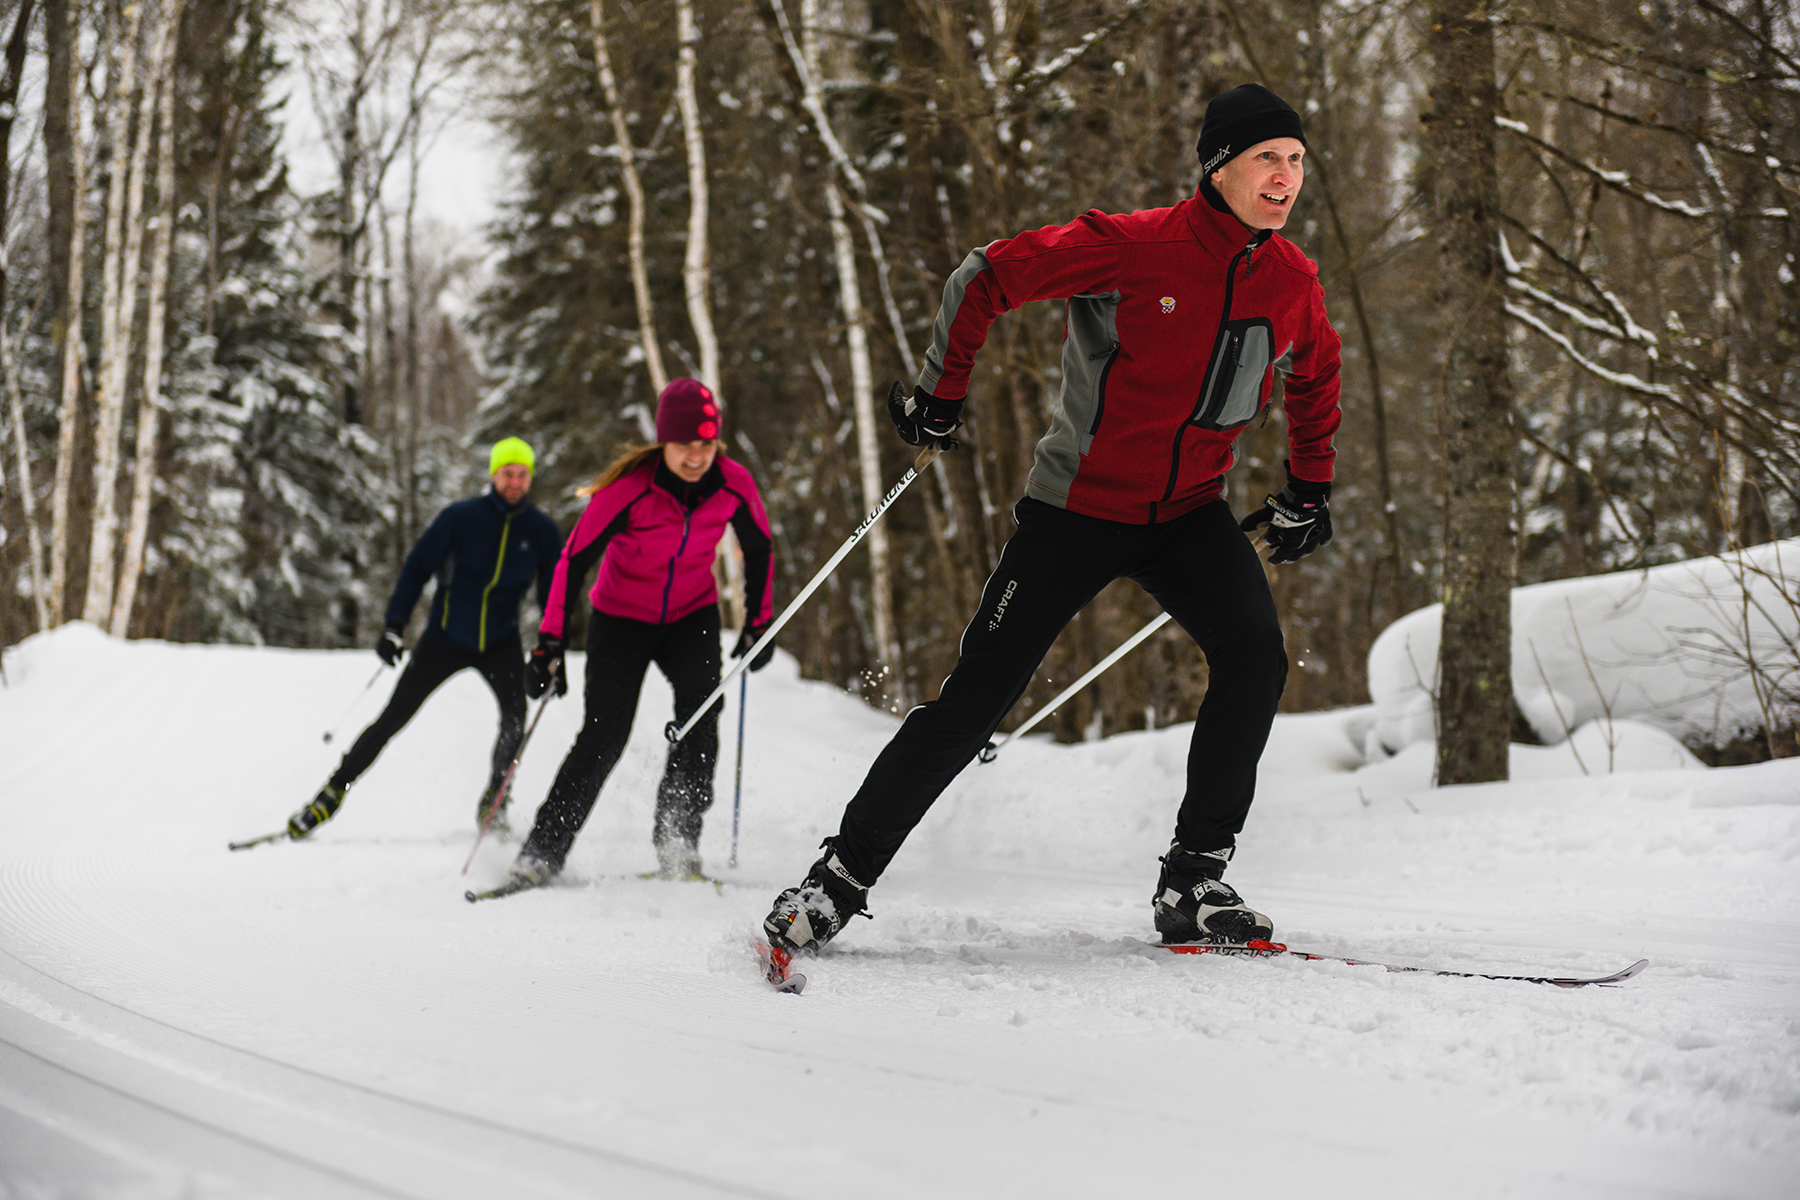 Make More Tracks: Top Nordic Centers In The Midwest